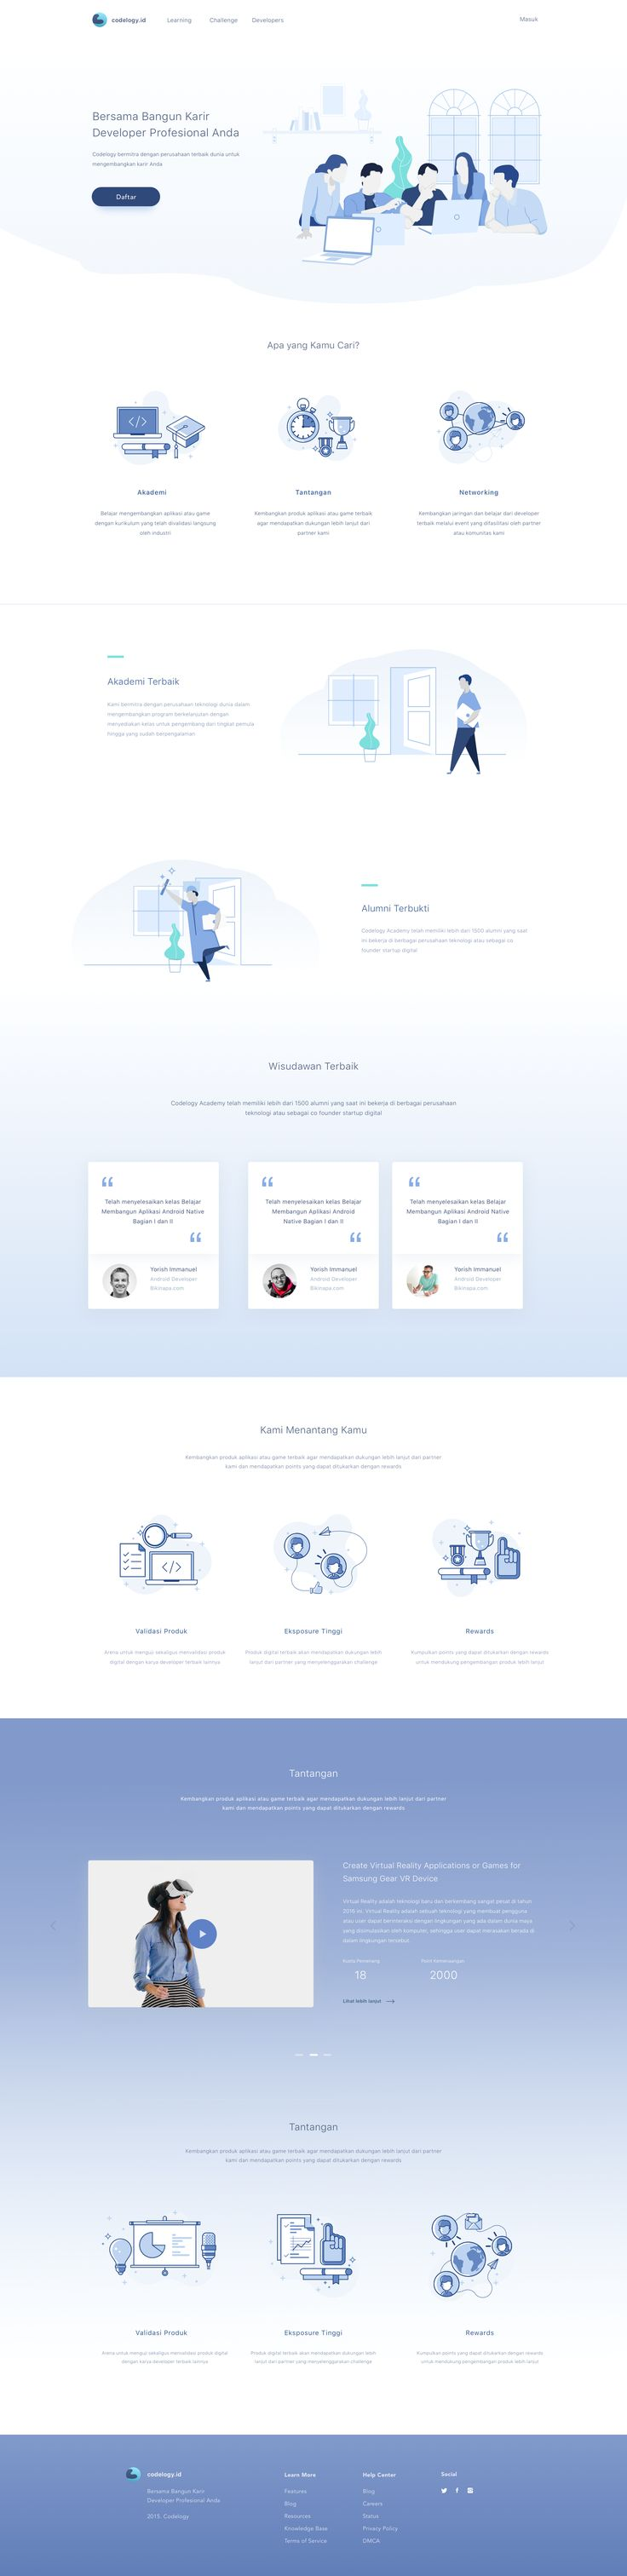 Education Platform Website - simple clean web page design